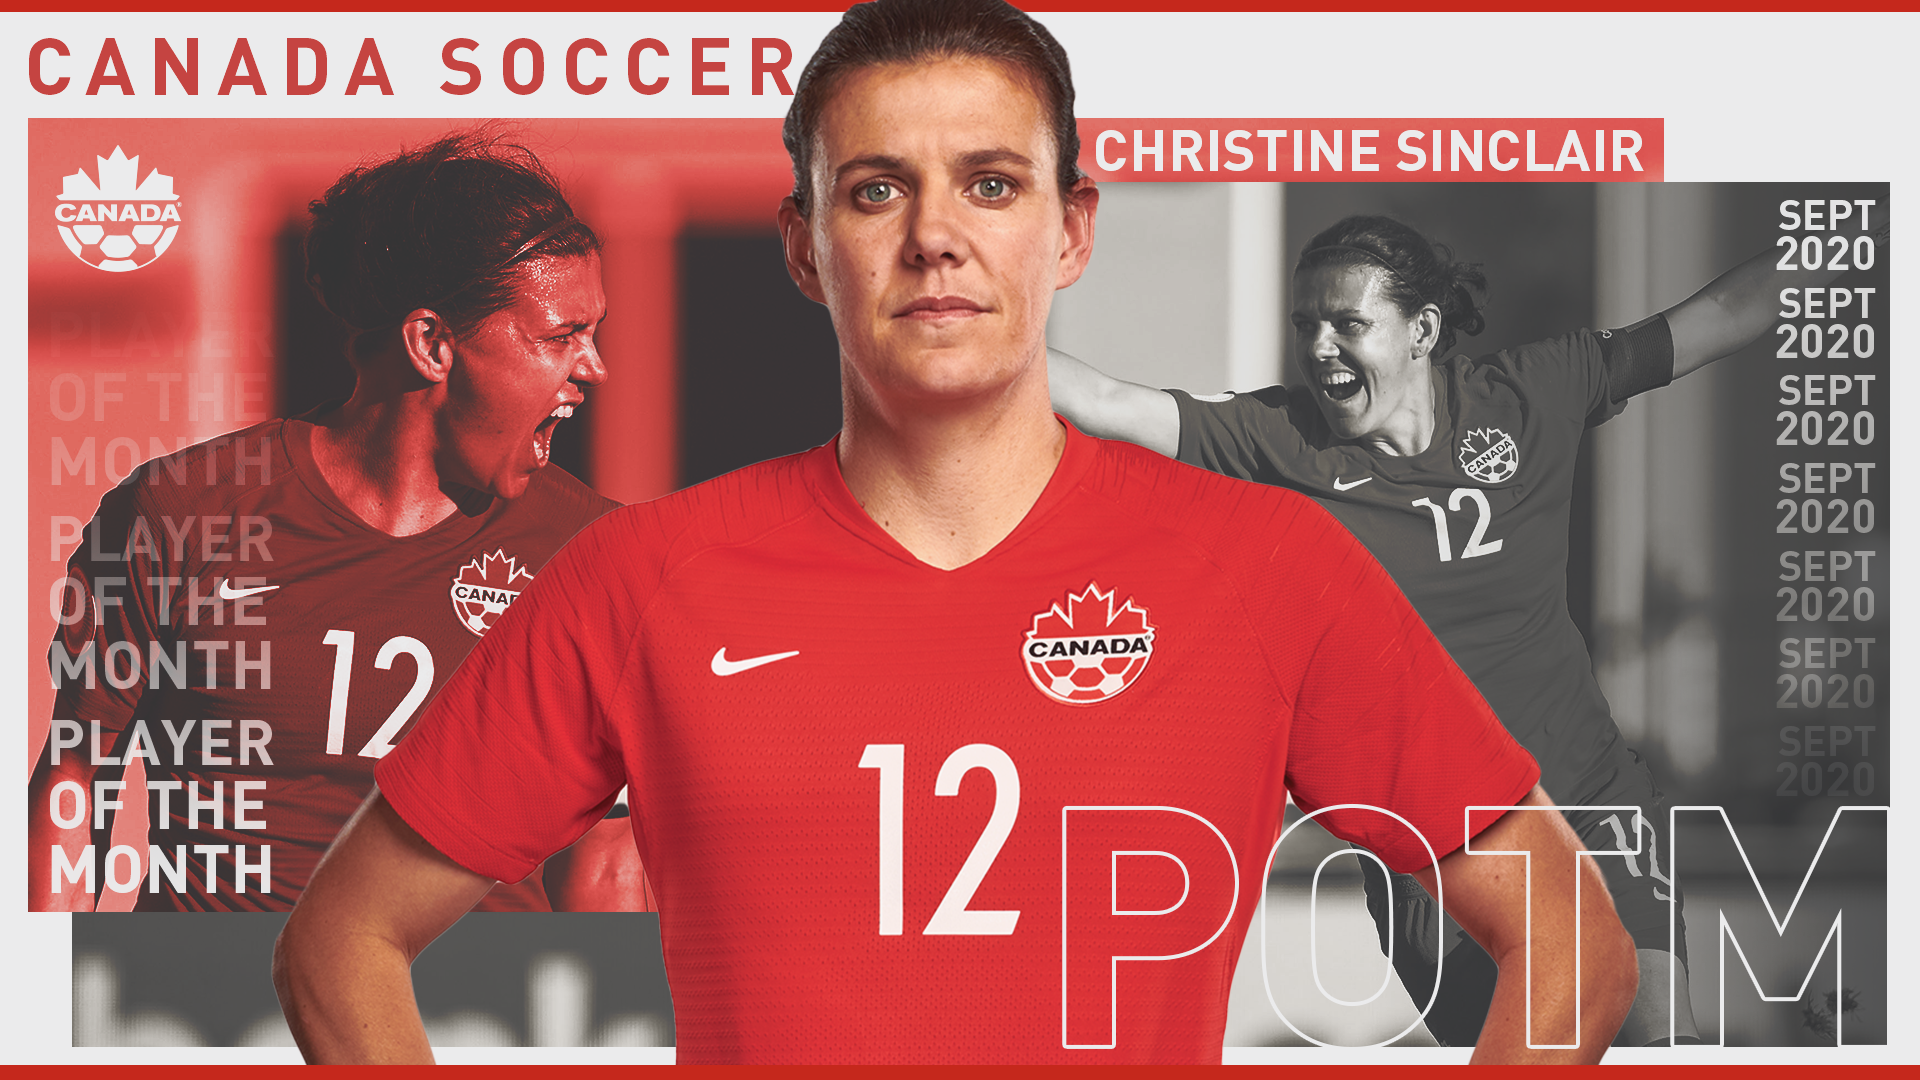 Christine Sinclair, Player of the Month